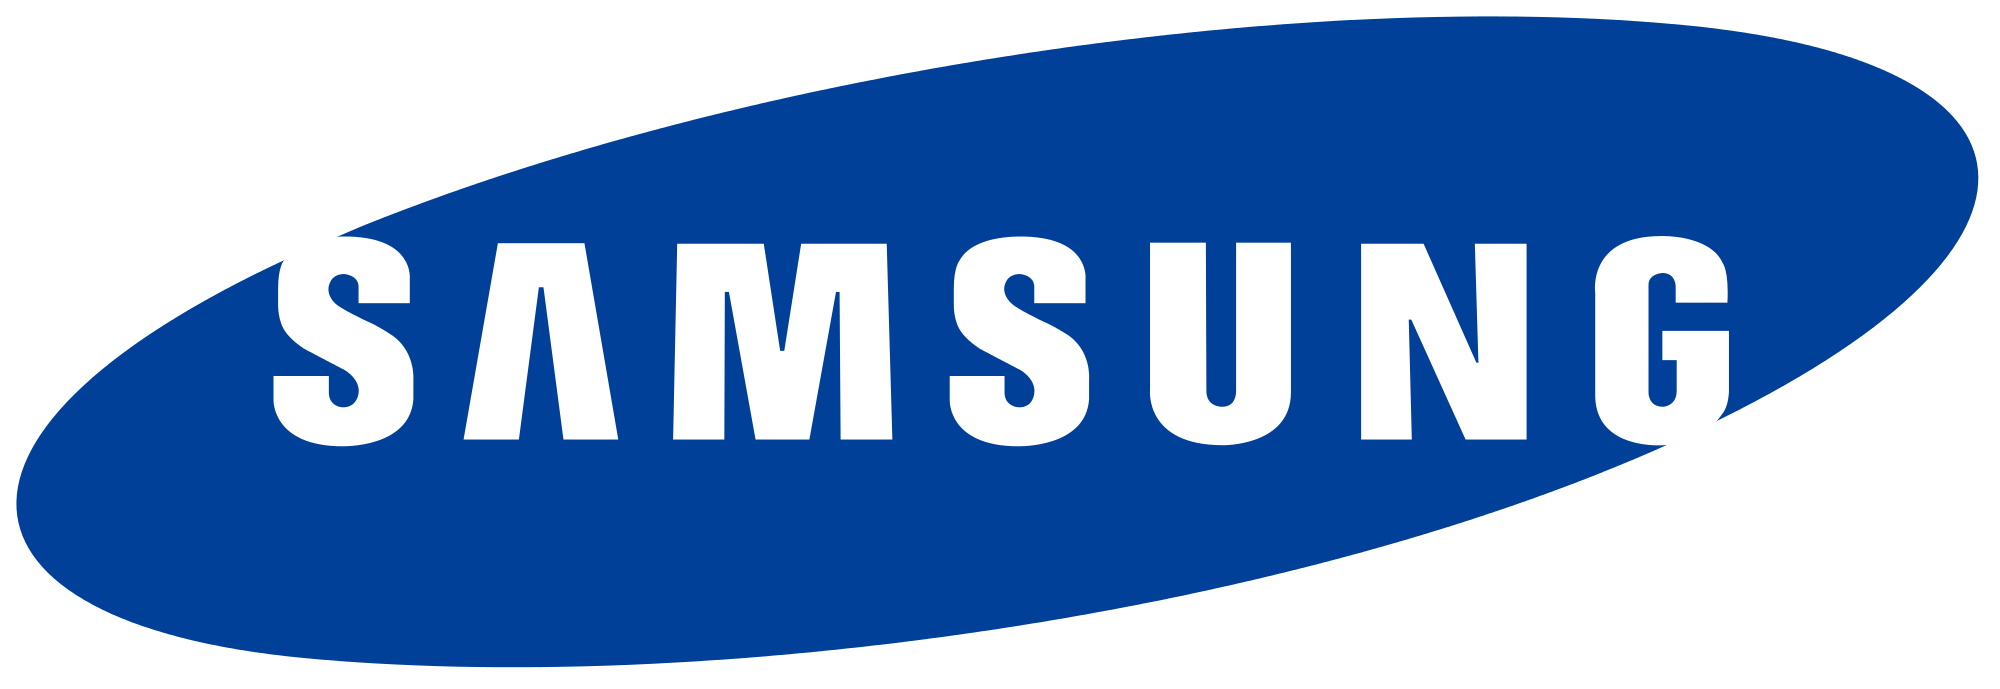 Samsung Simple Logo transparent PNG 1304